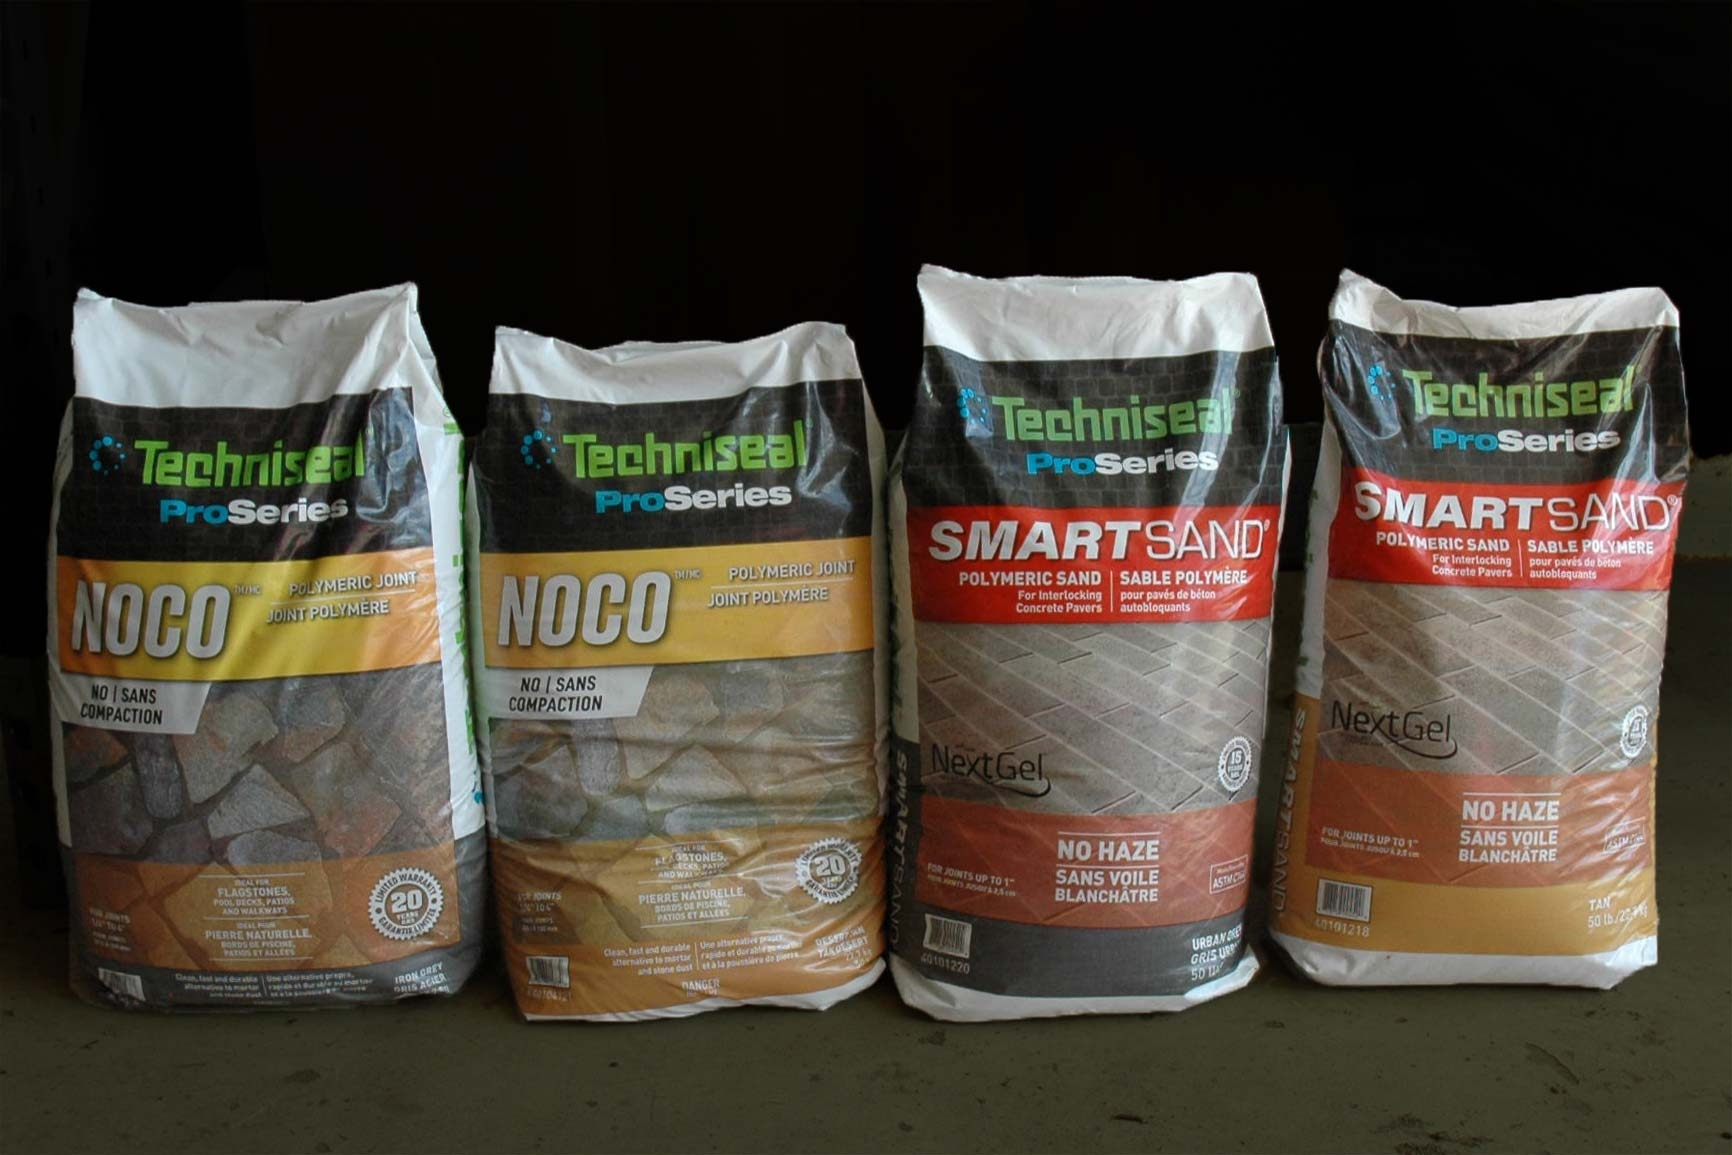 NOCO-and-Techniseal-Polymeric-Sand